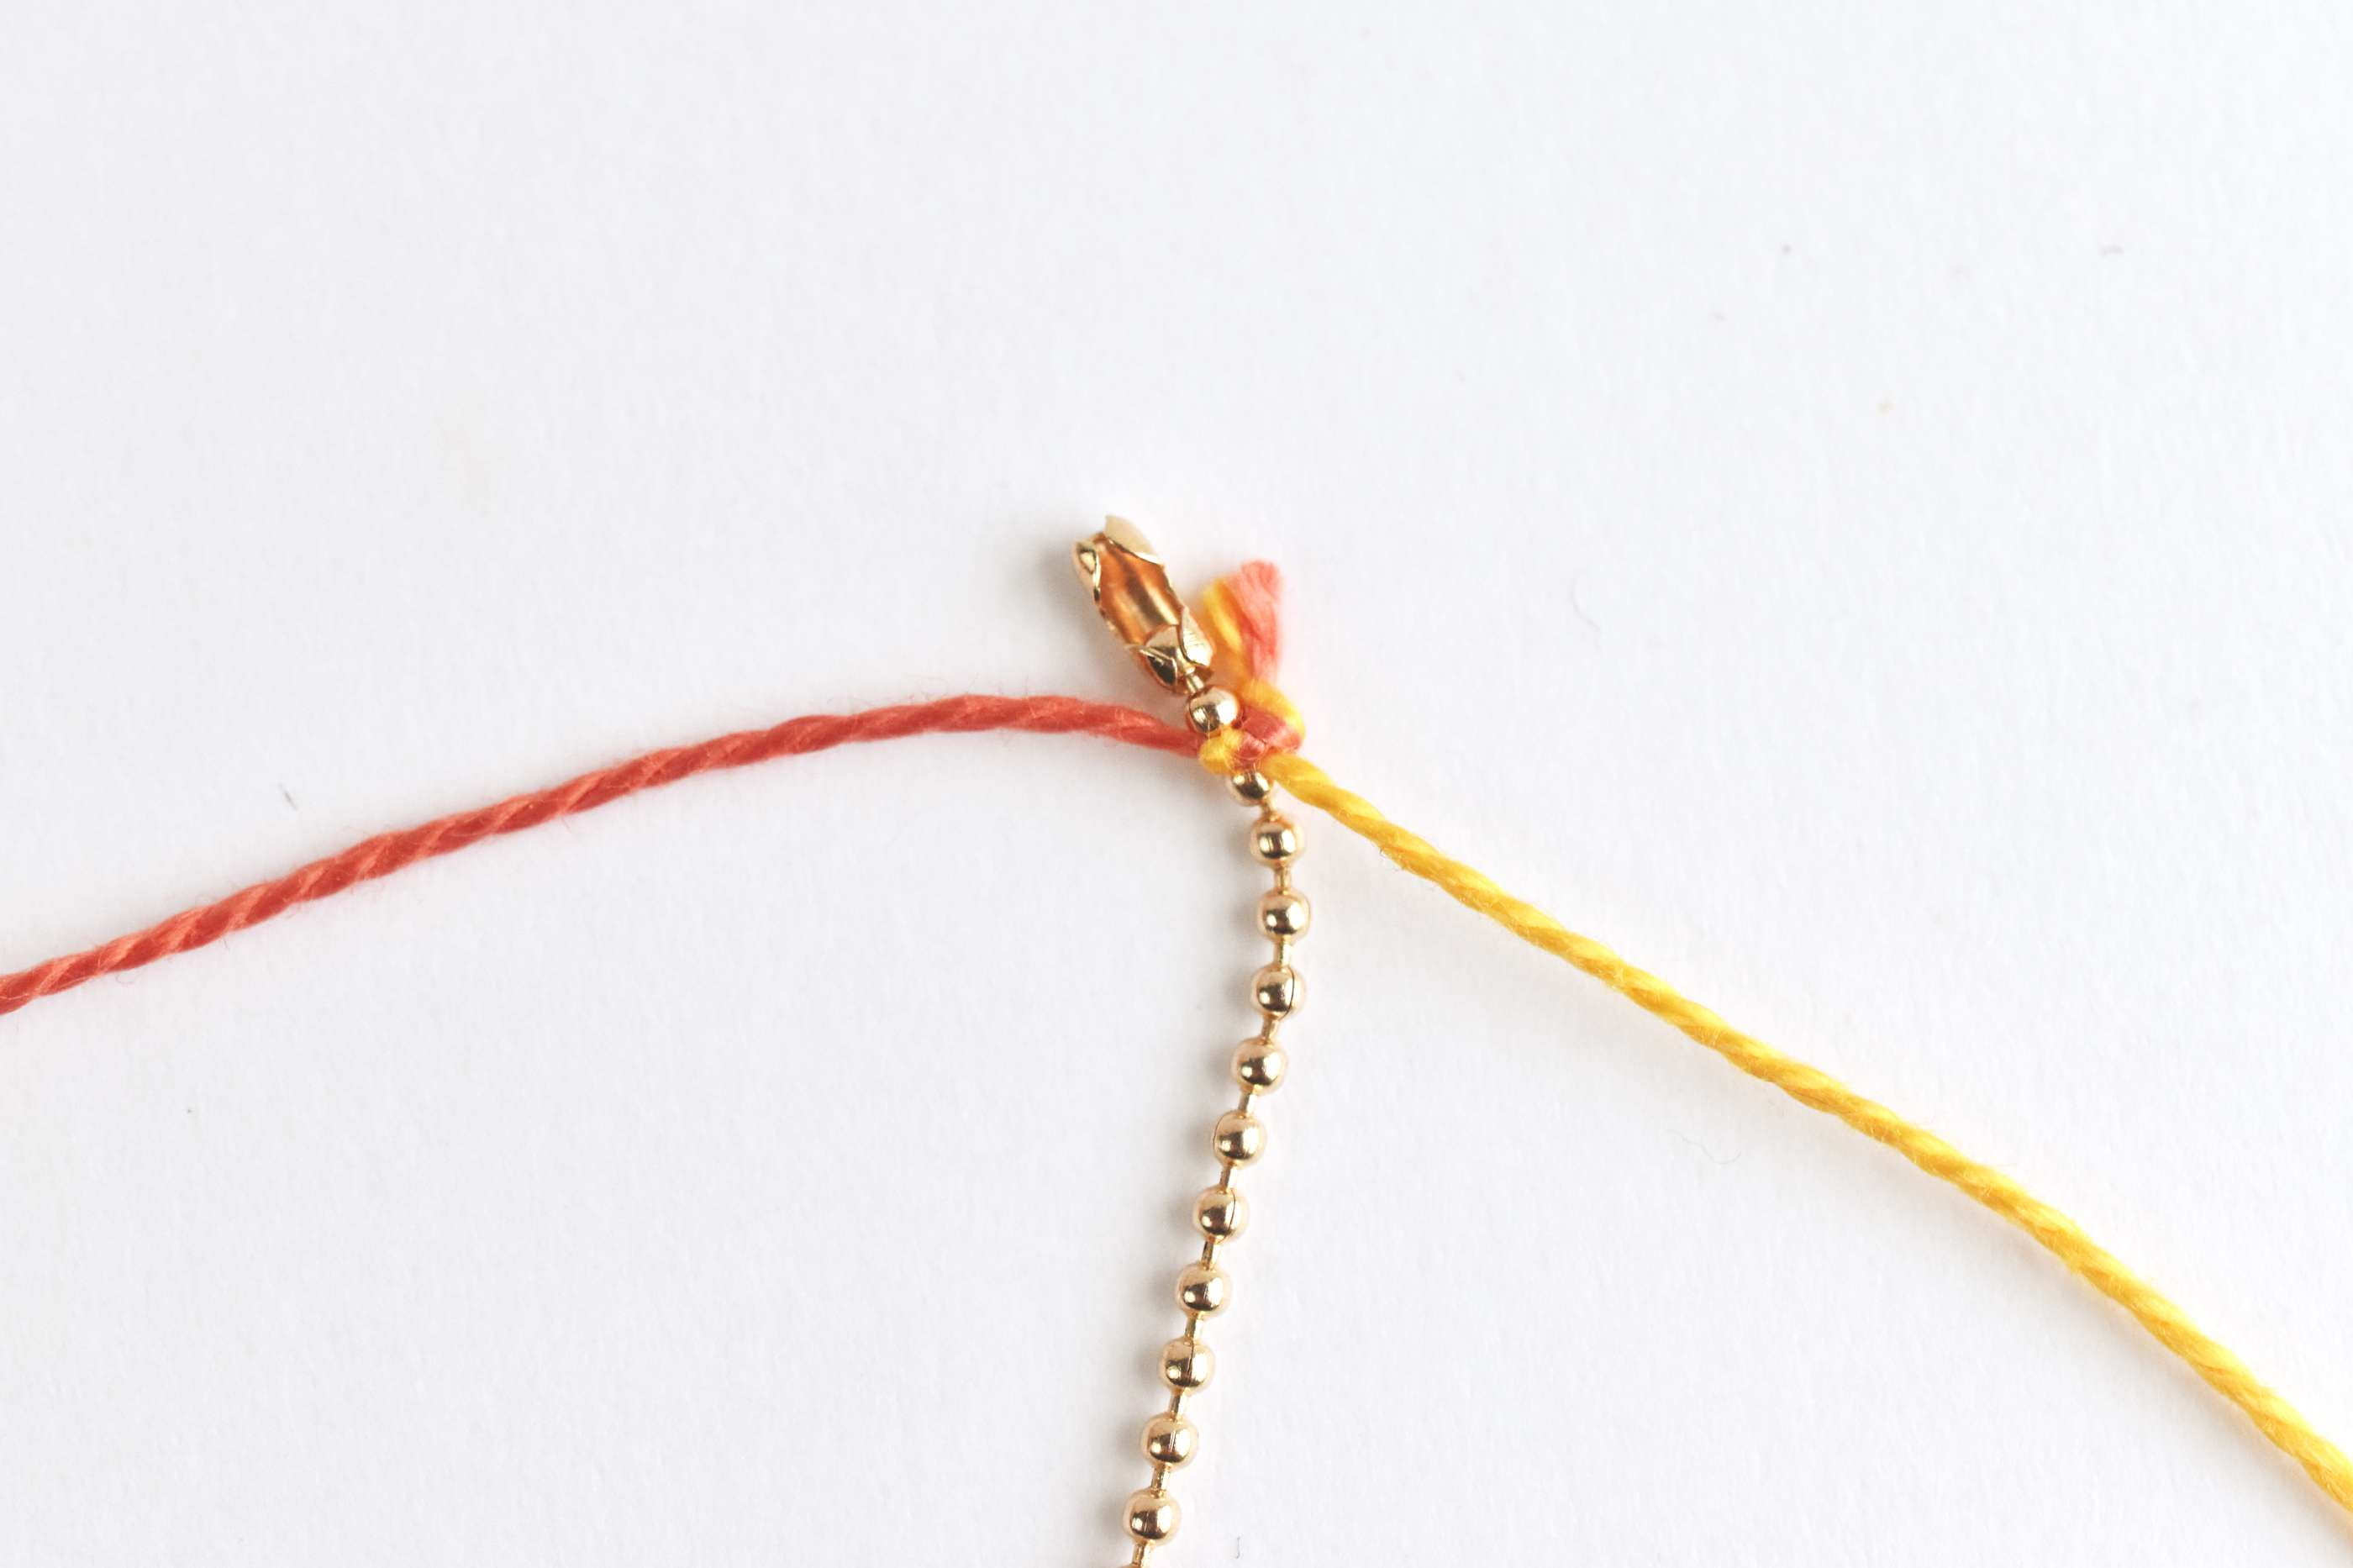 Tie the Thread to the Chain